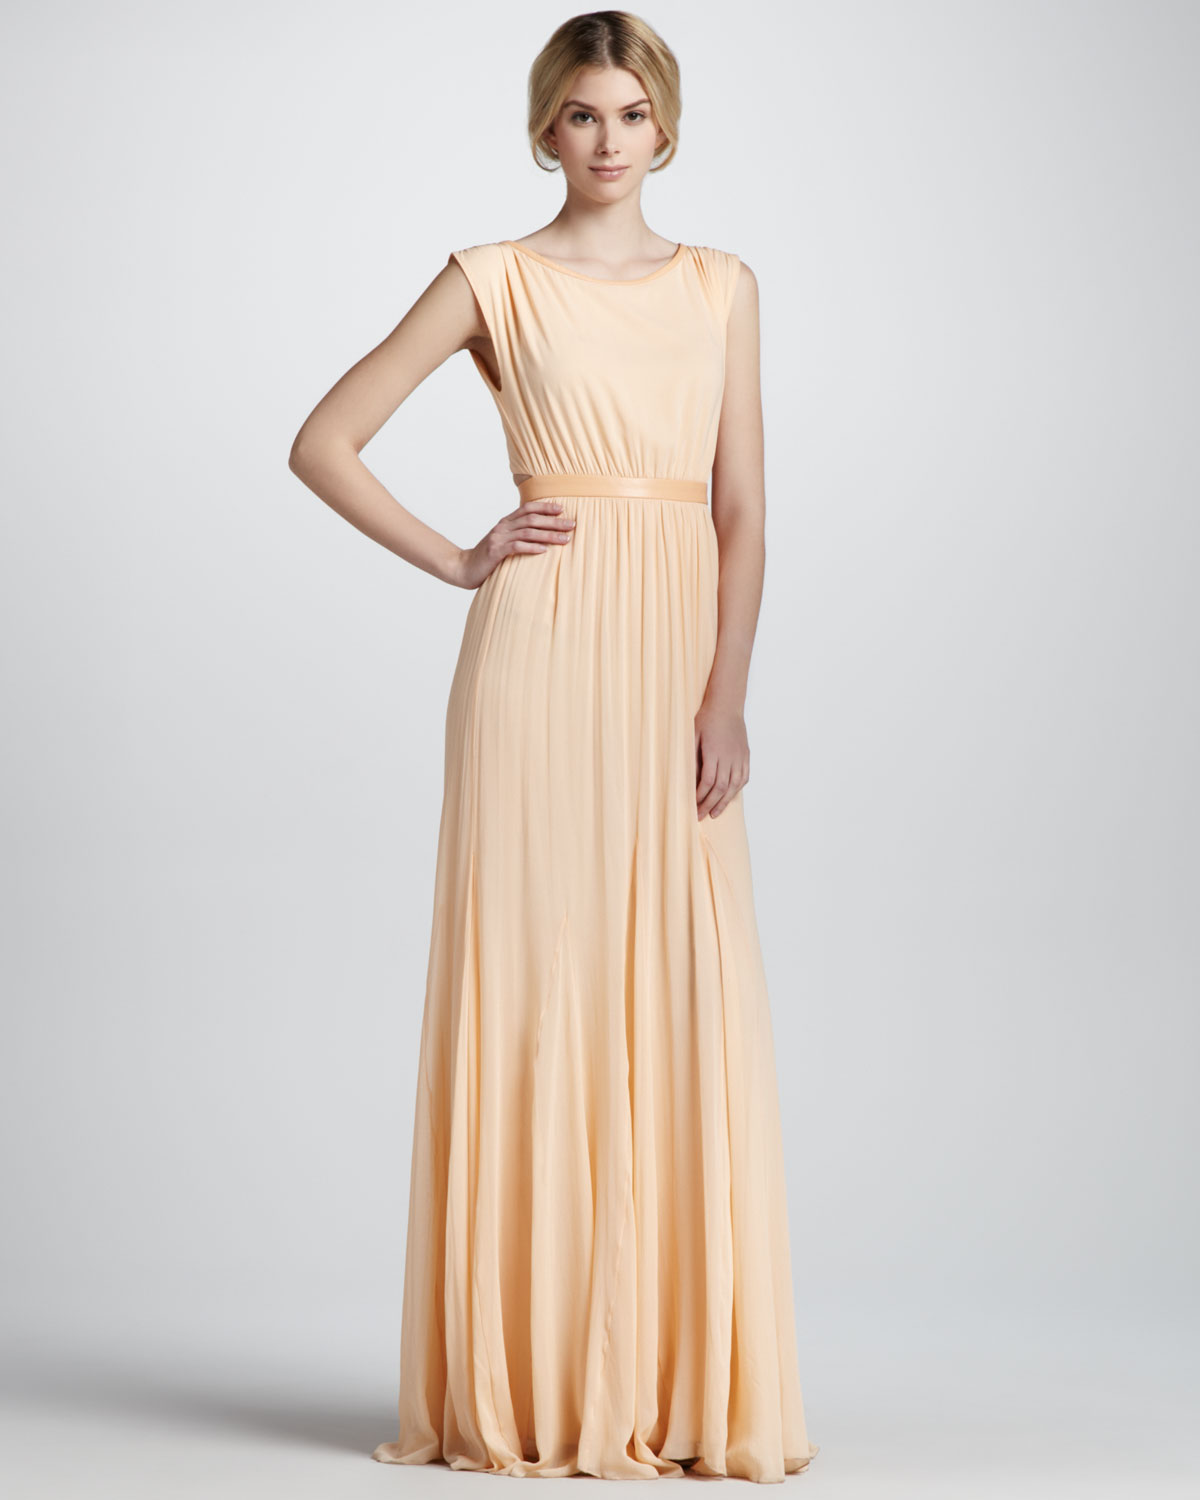 6f2fd97488 Alice + Olivia Triss Belted Maxi Dress in Natural - Lyst